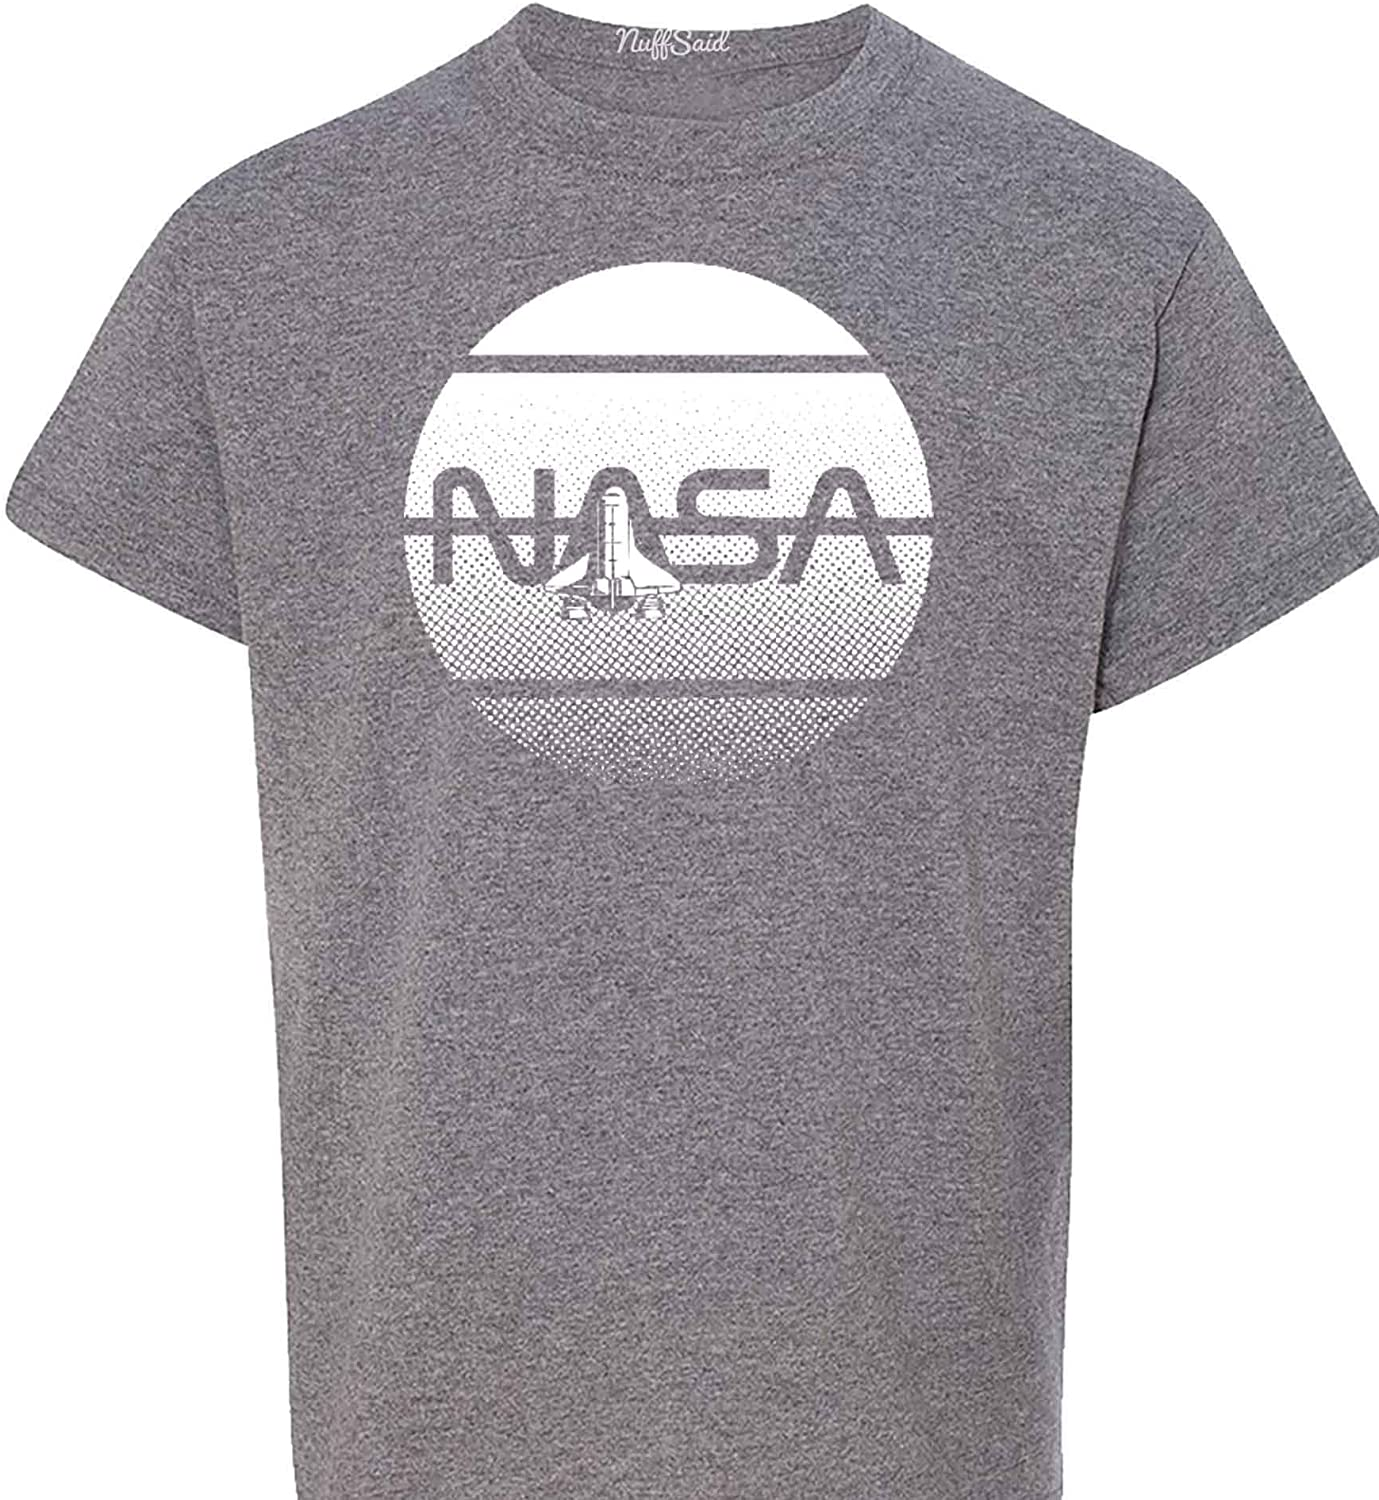 NuffSaid Youth NASA Challenger Space Ship T-Shirt - Children's Science Adventure Tee